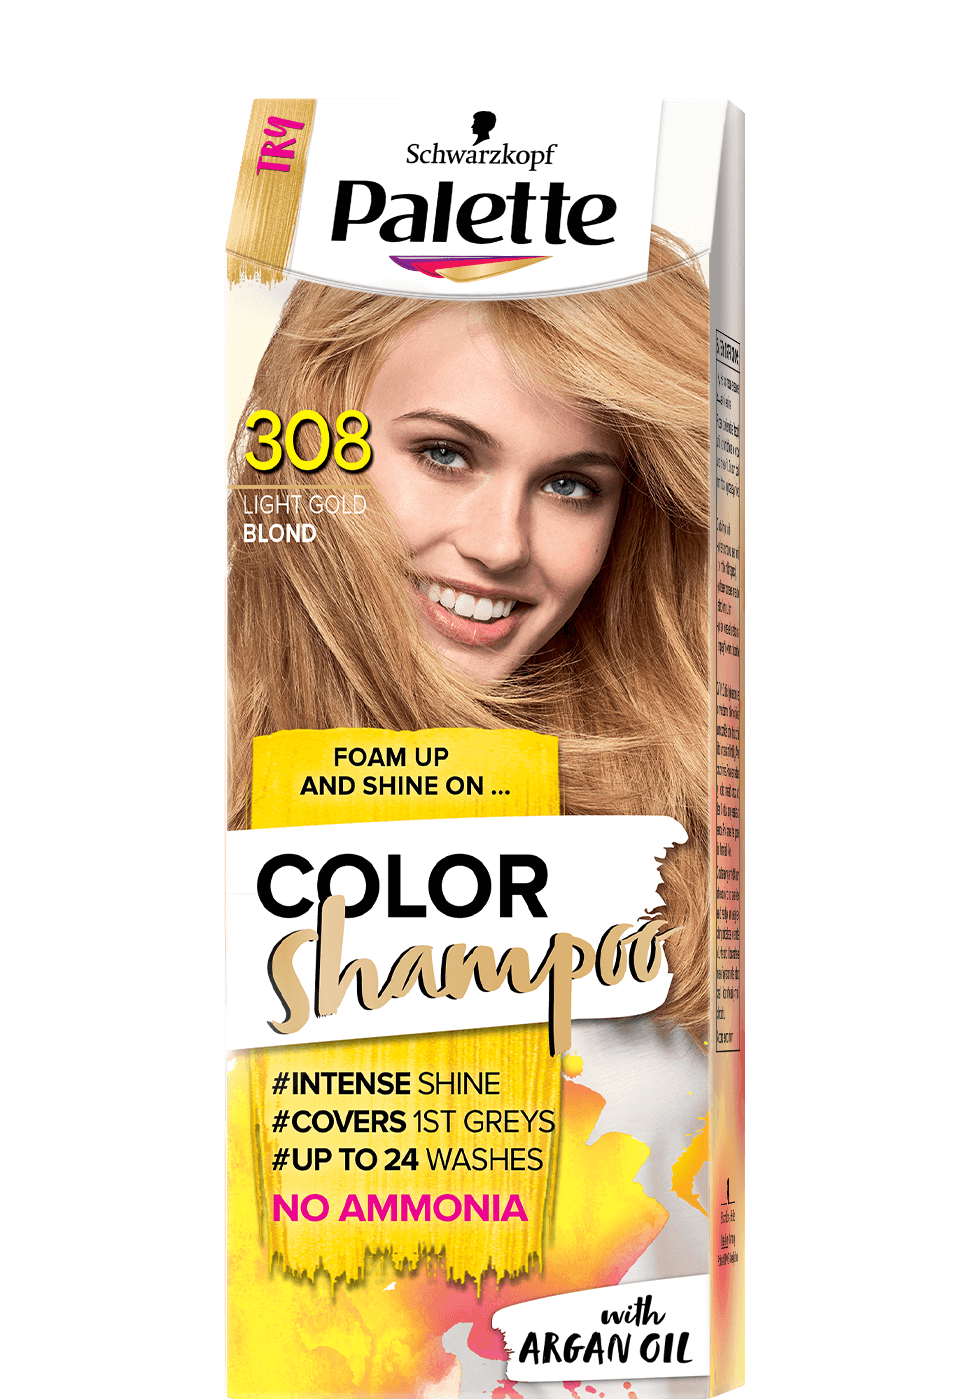 palette_com_cs_baseline_308_light_gold_blond_970x1400